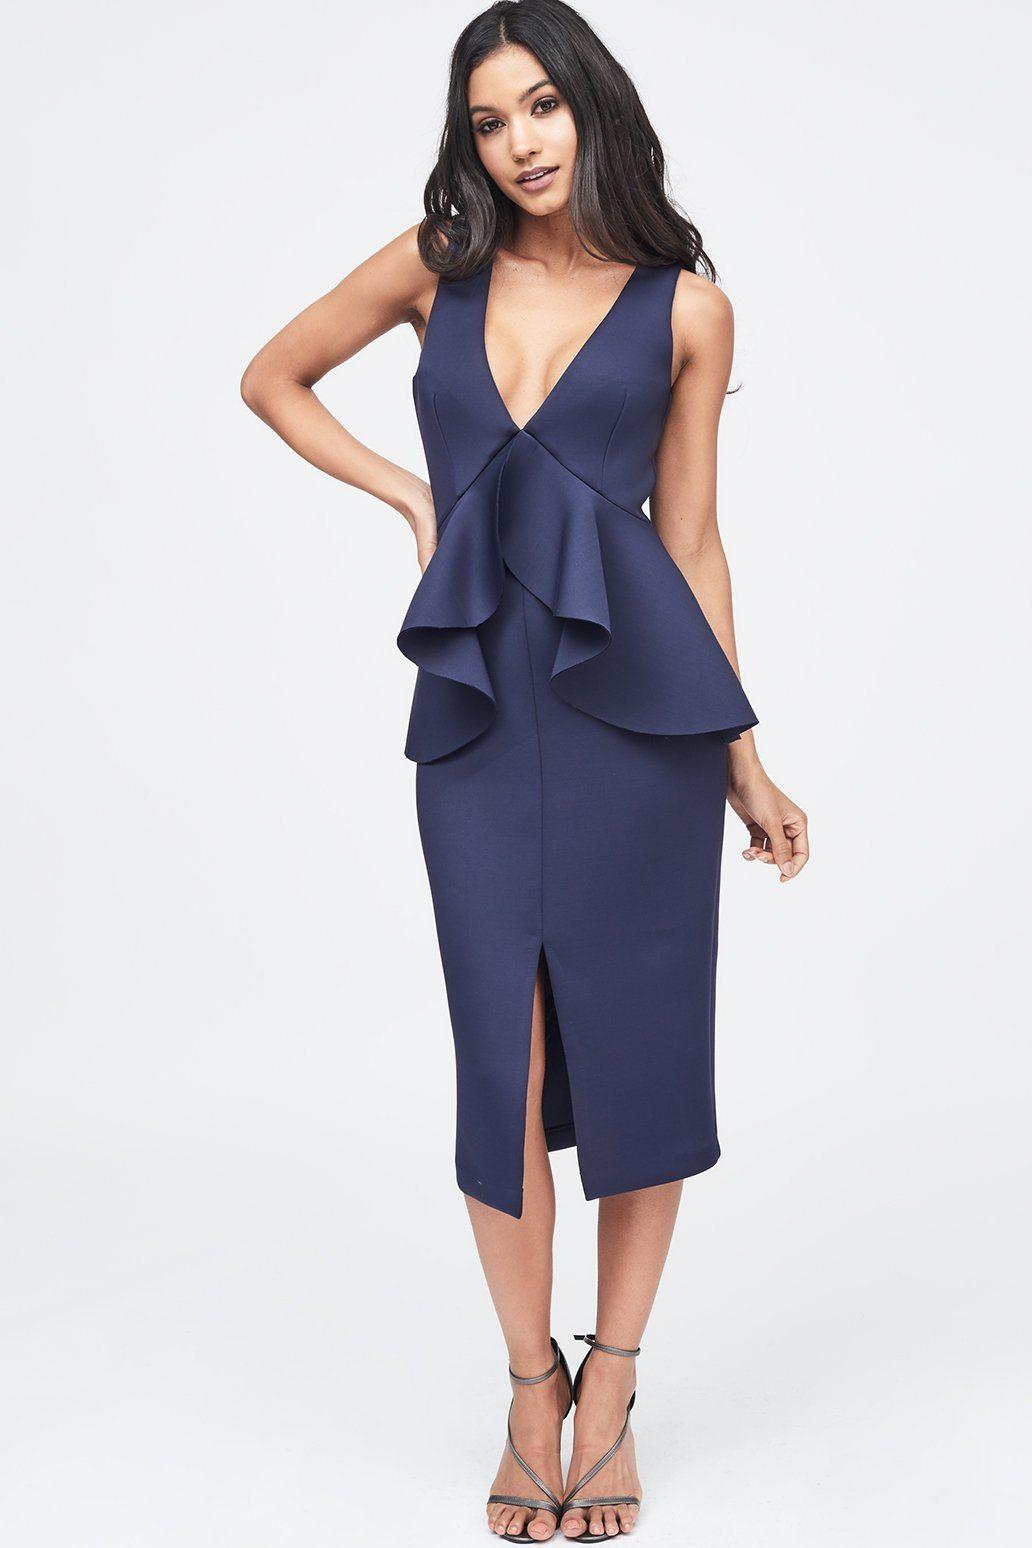 5f438b72060 Lavish Alice - Blue Scuba Peplum Ruffle Dress In Navy - Lyst. View  fullscreen